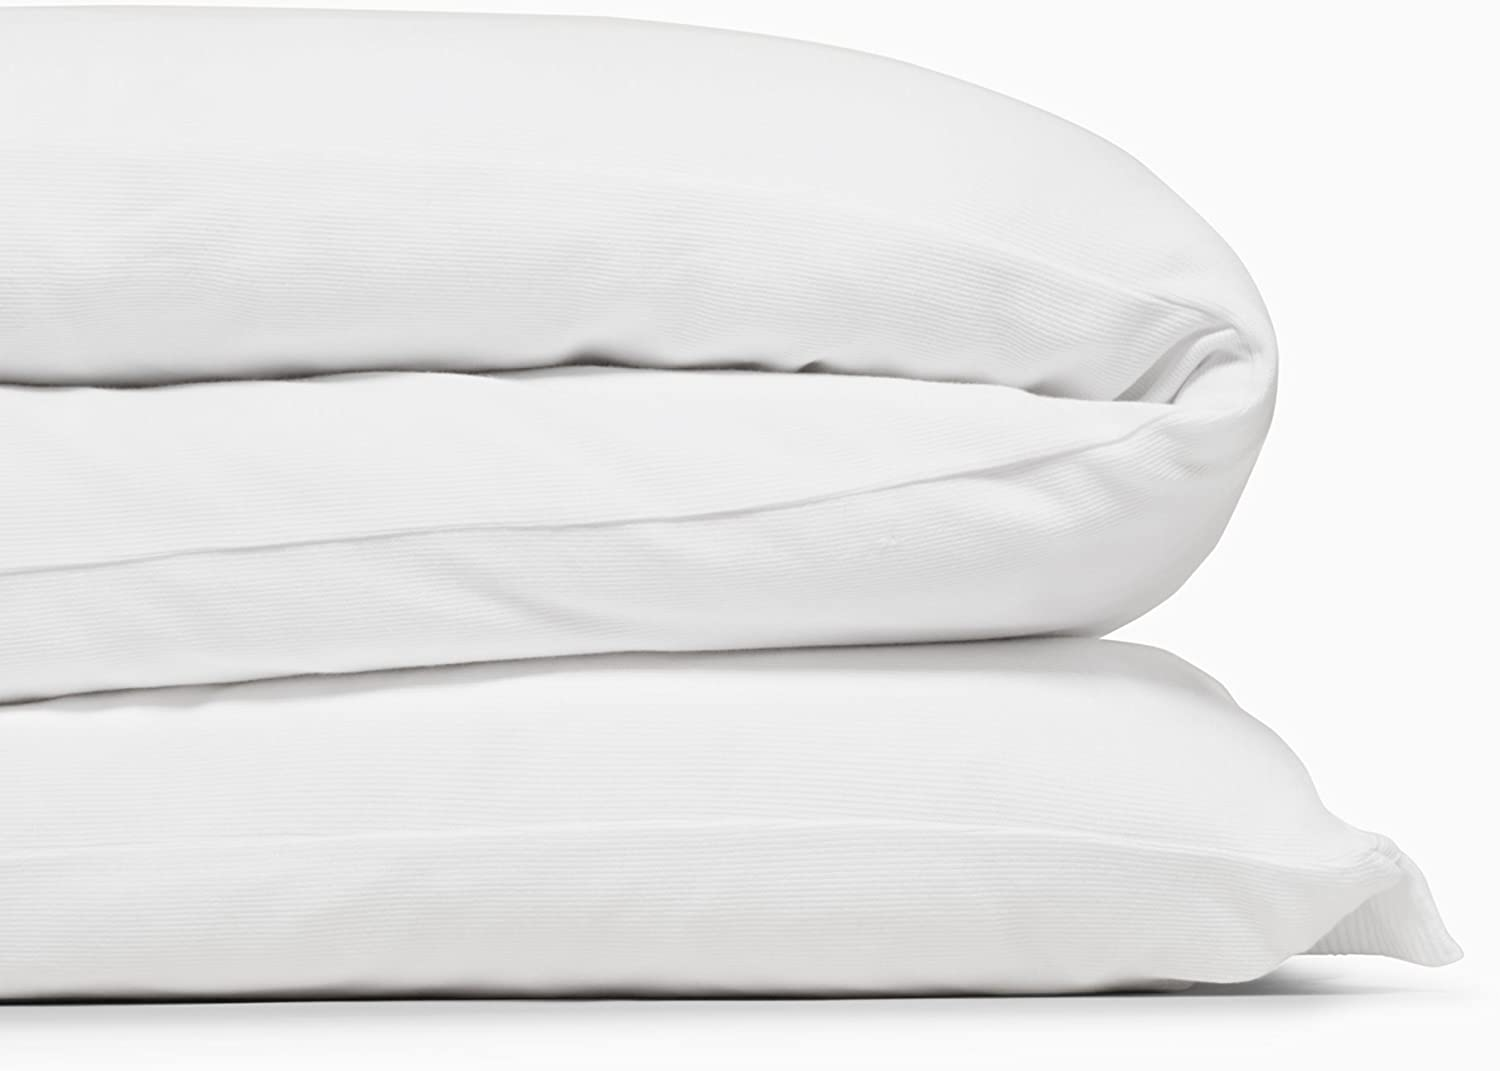 Calvin Klein Home Modern Cotton Julian Duvet Cover, Twin, White